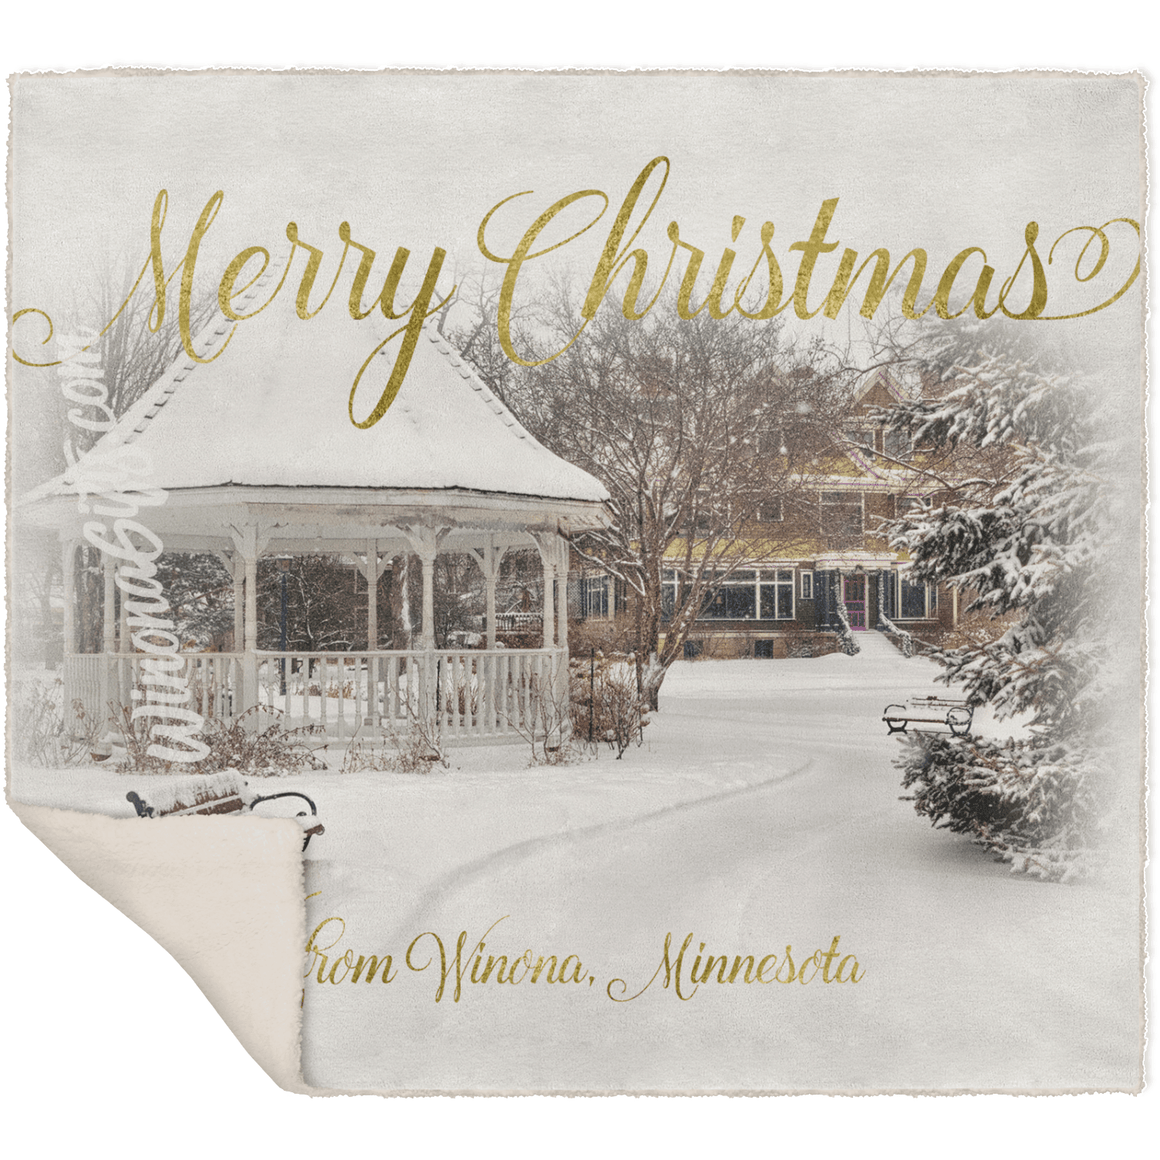 Blanket, Fleece Sherpa, Merry Christmas Winona Minnesota Gazebo - Kari Yearous Photography KetoLaughs